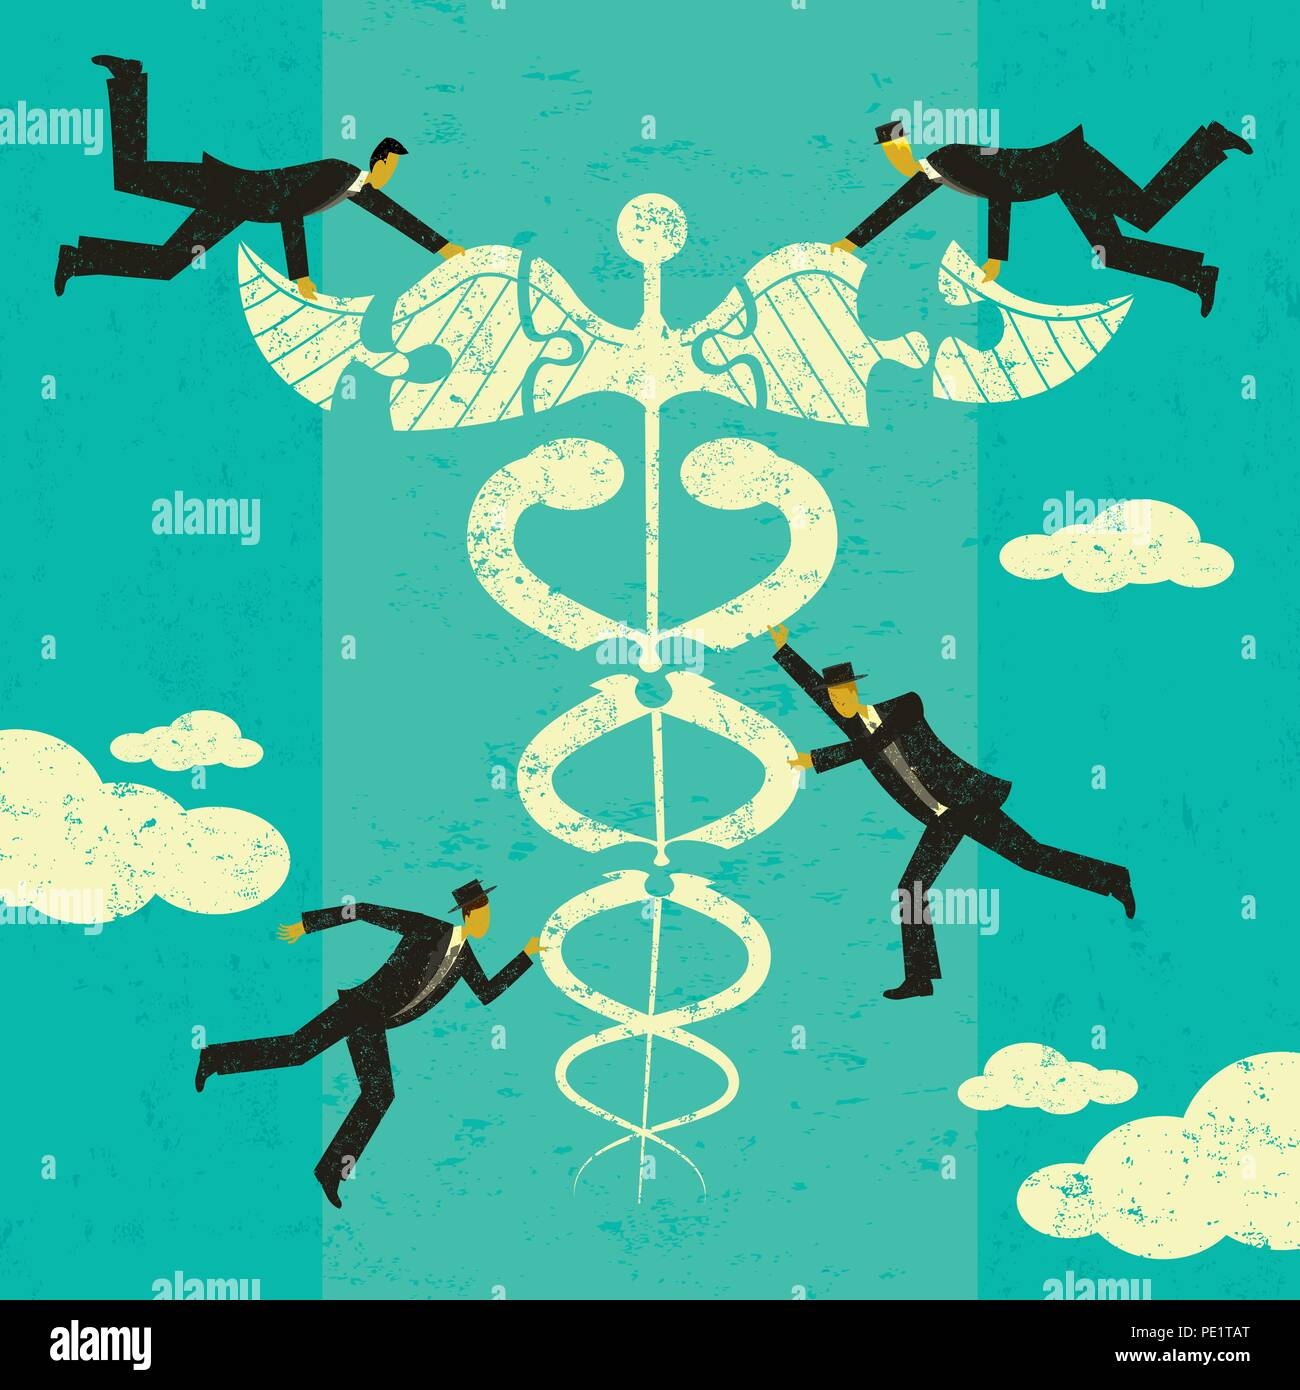 Healthcare Solutions. A group of men putting the puzzle pieces together to find solutions for healthcare. - Stock Image